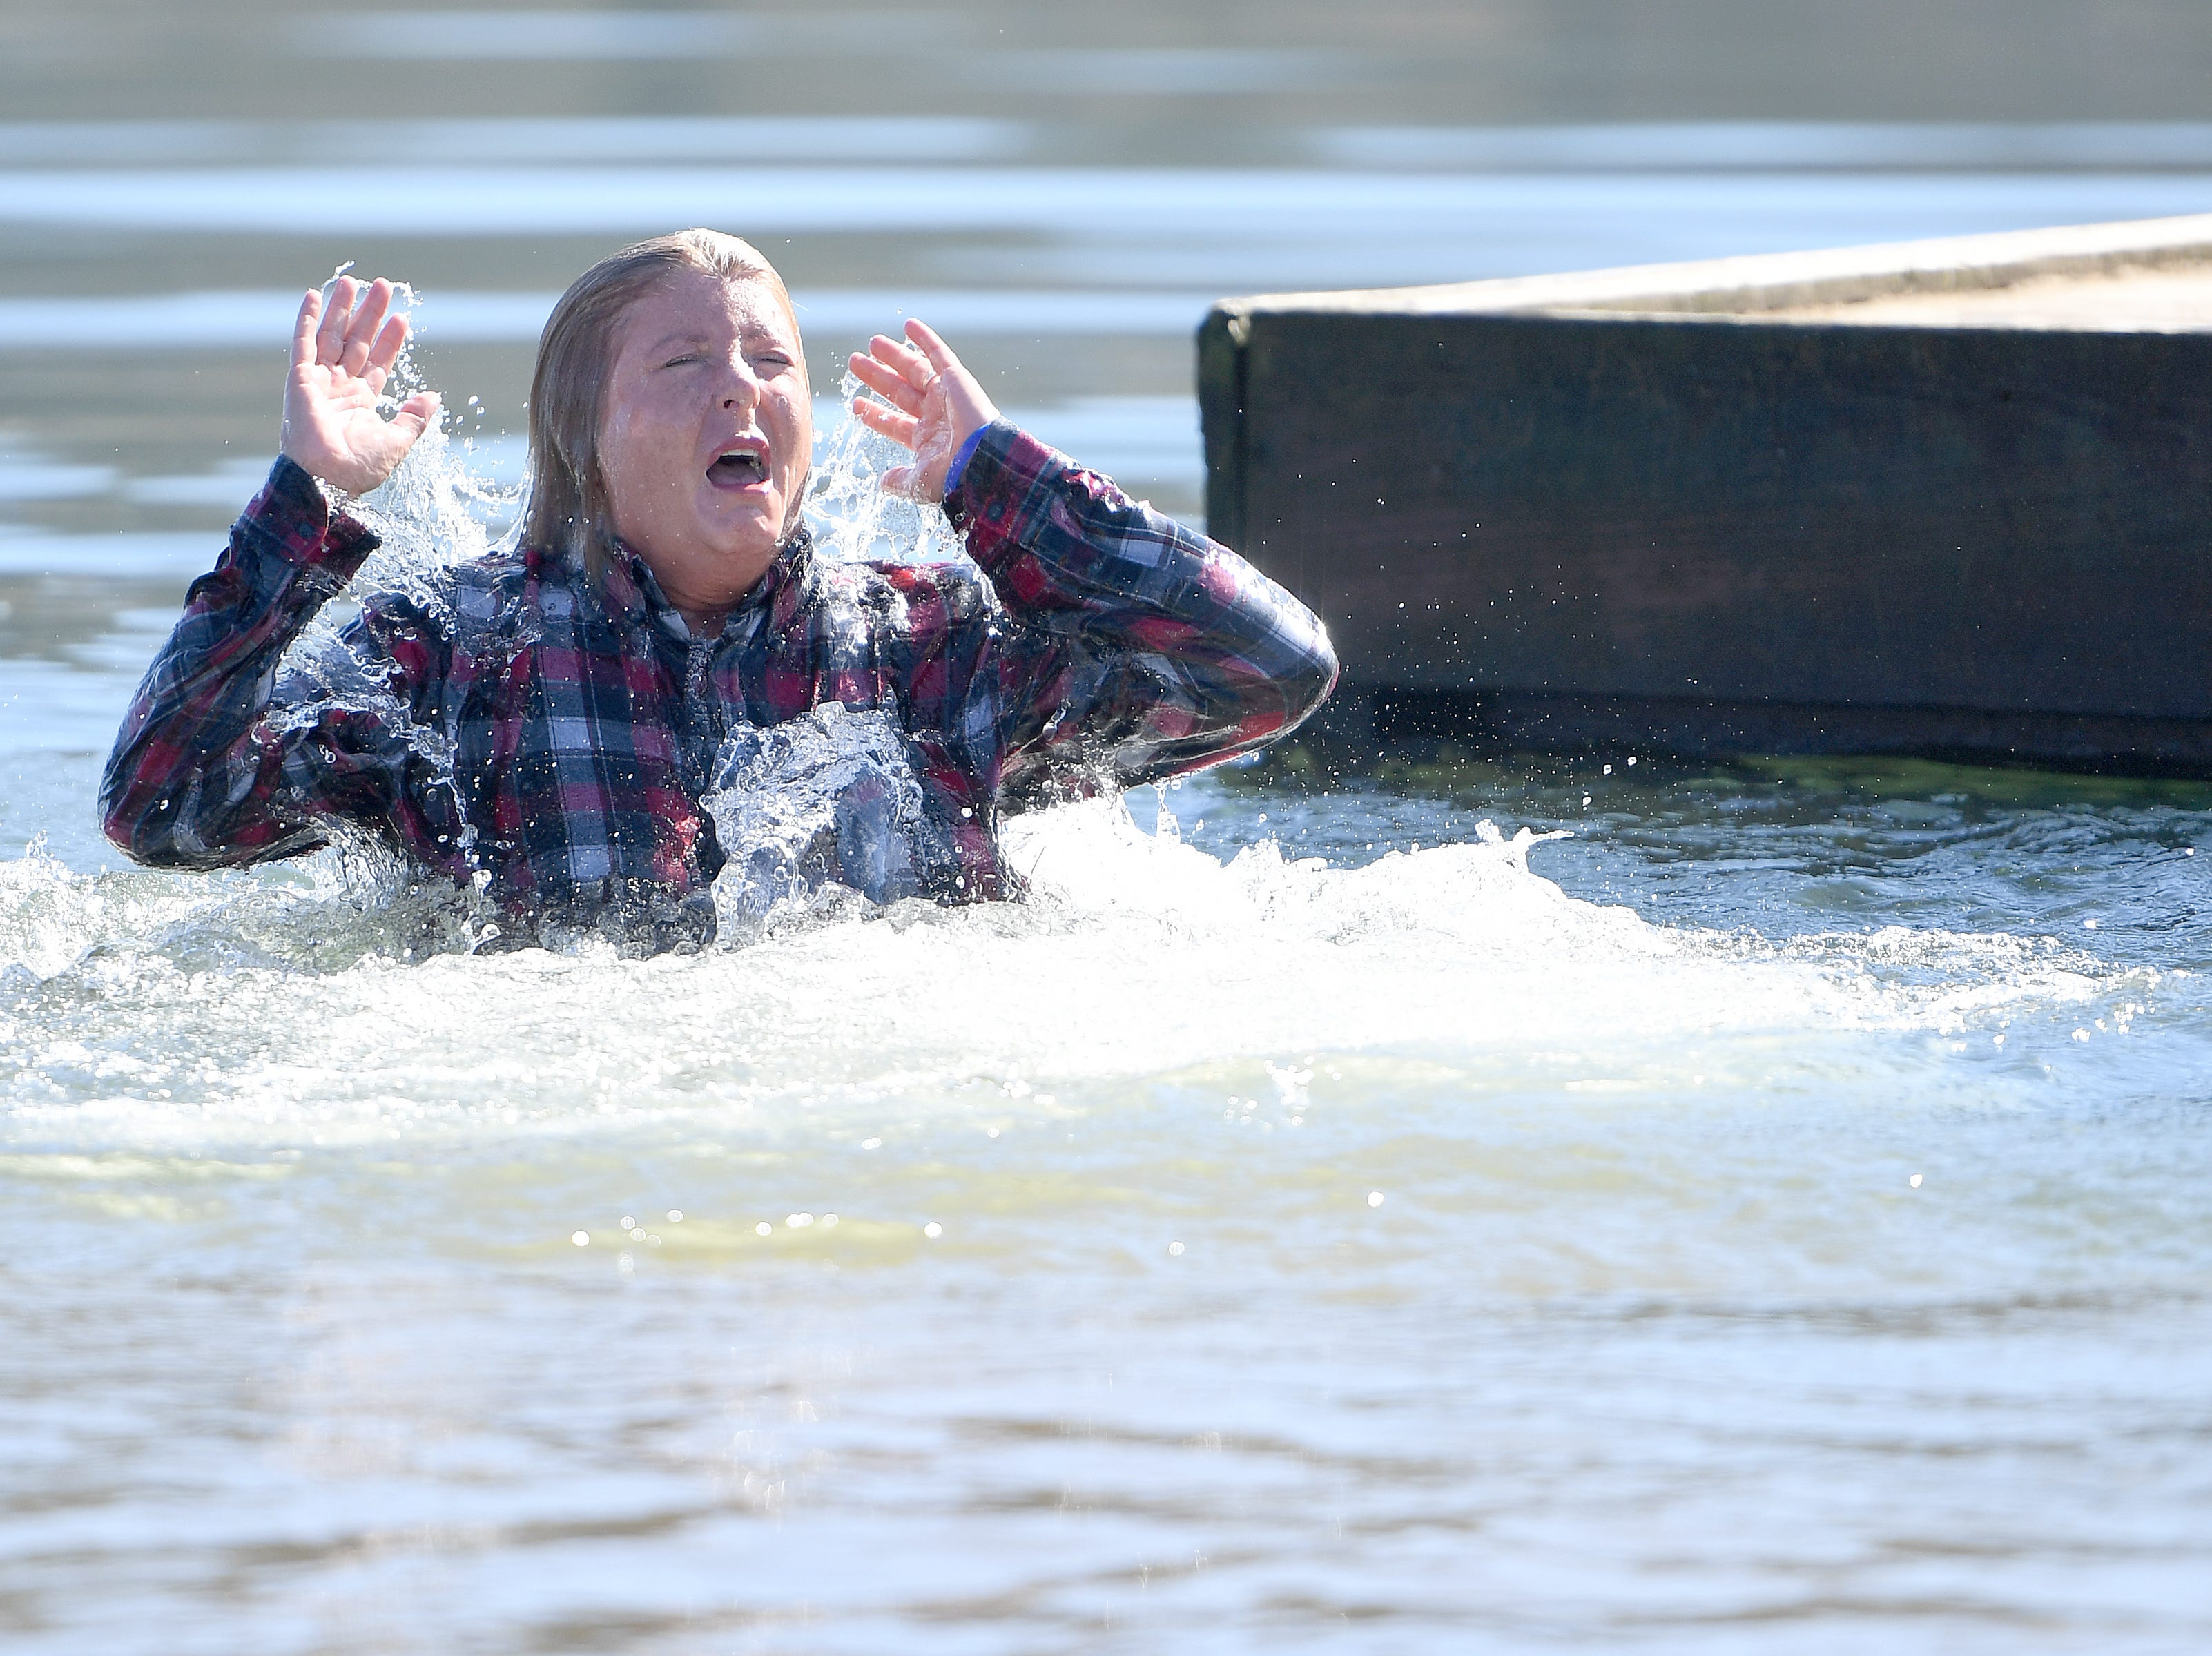 The 7th Annual Plunge at Lake Junaluska Conference and Retreat Center raised more than $30,000 for Kids in the Creek and environmental education on Feb. 2, 2019.